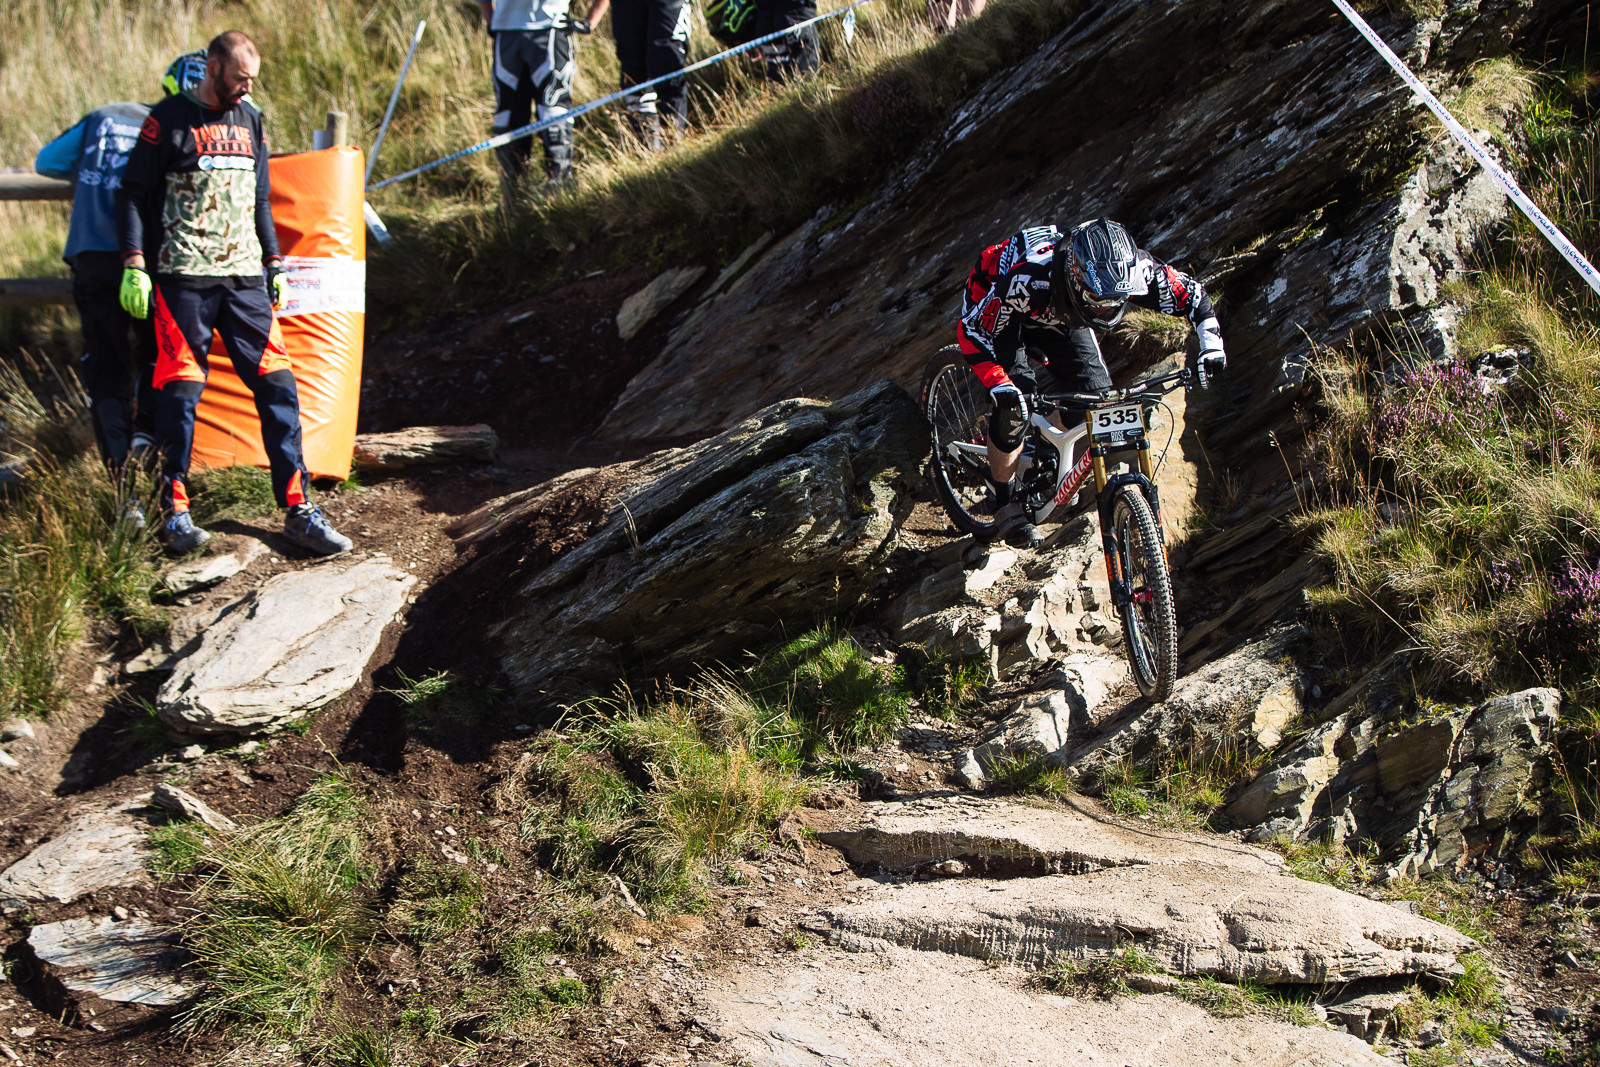 Benjamin Garrard, 2015 British Downhill Series Finals, Antur Stiniog - 2015 British Downhill Series Finals - Mountain Biking Pictures - Vital MTB